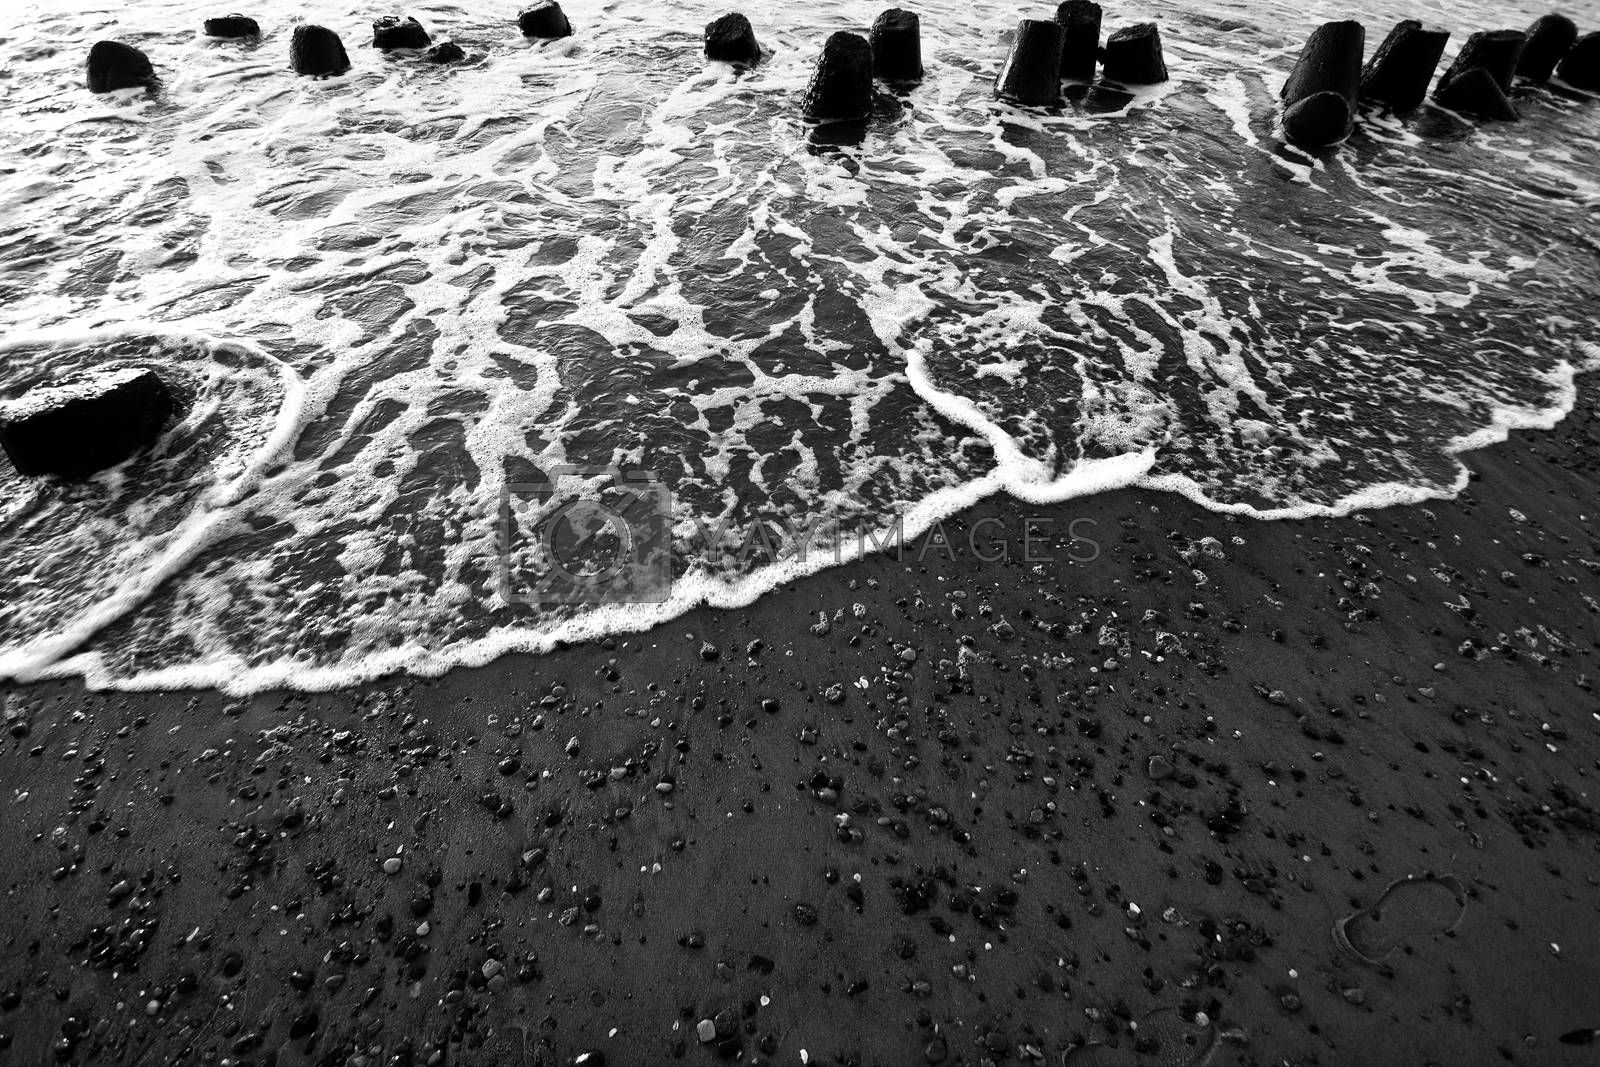 Sea ocean waves in black and white colors.